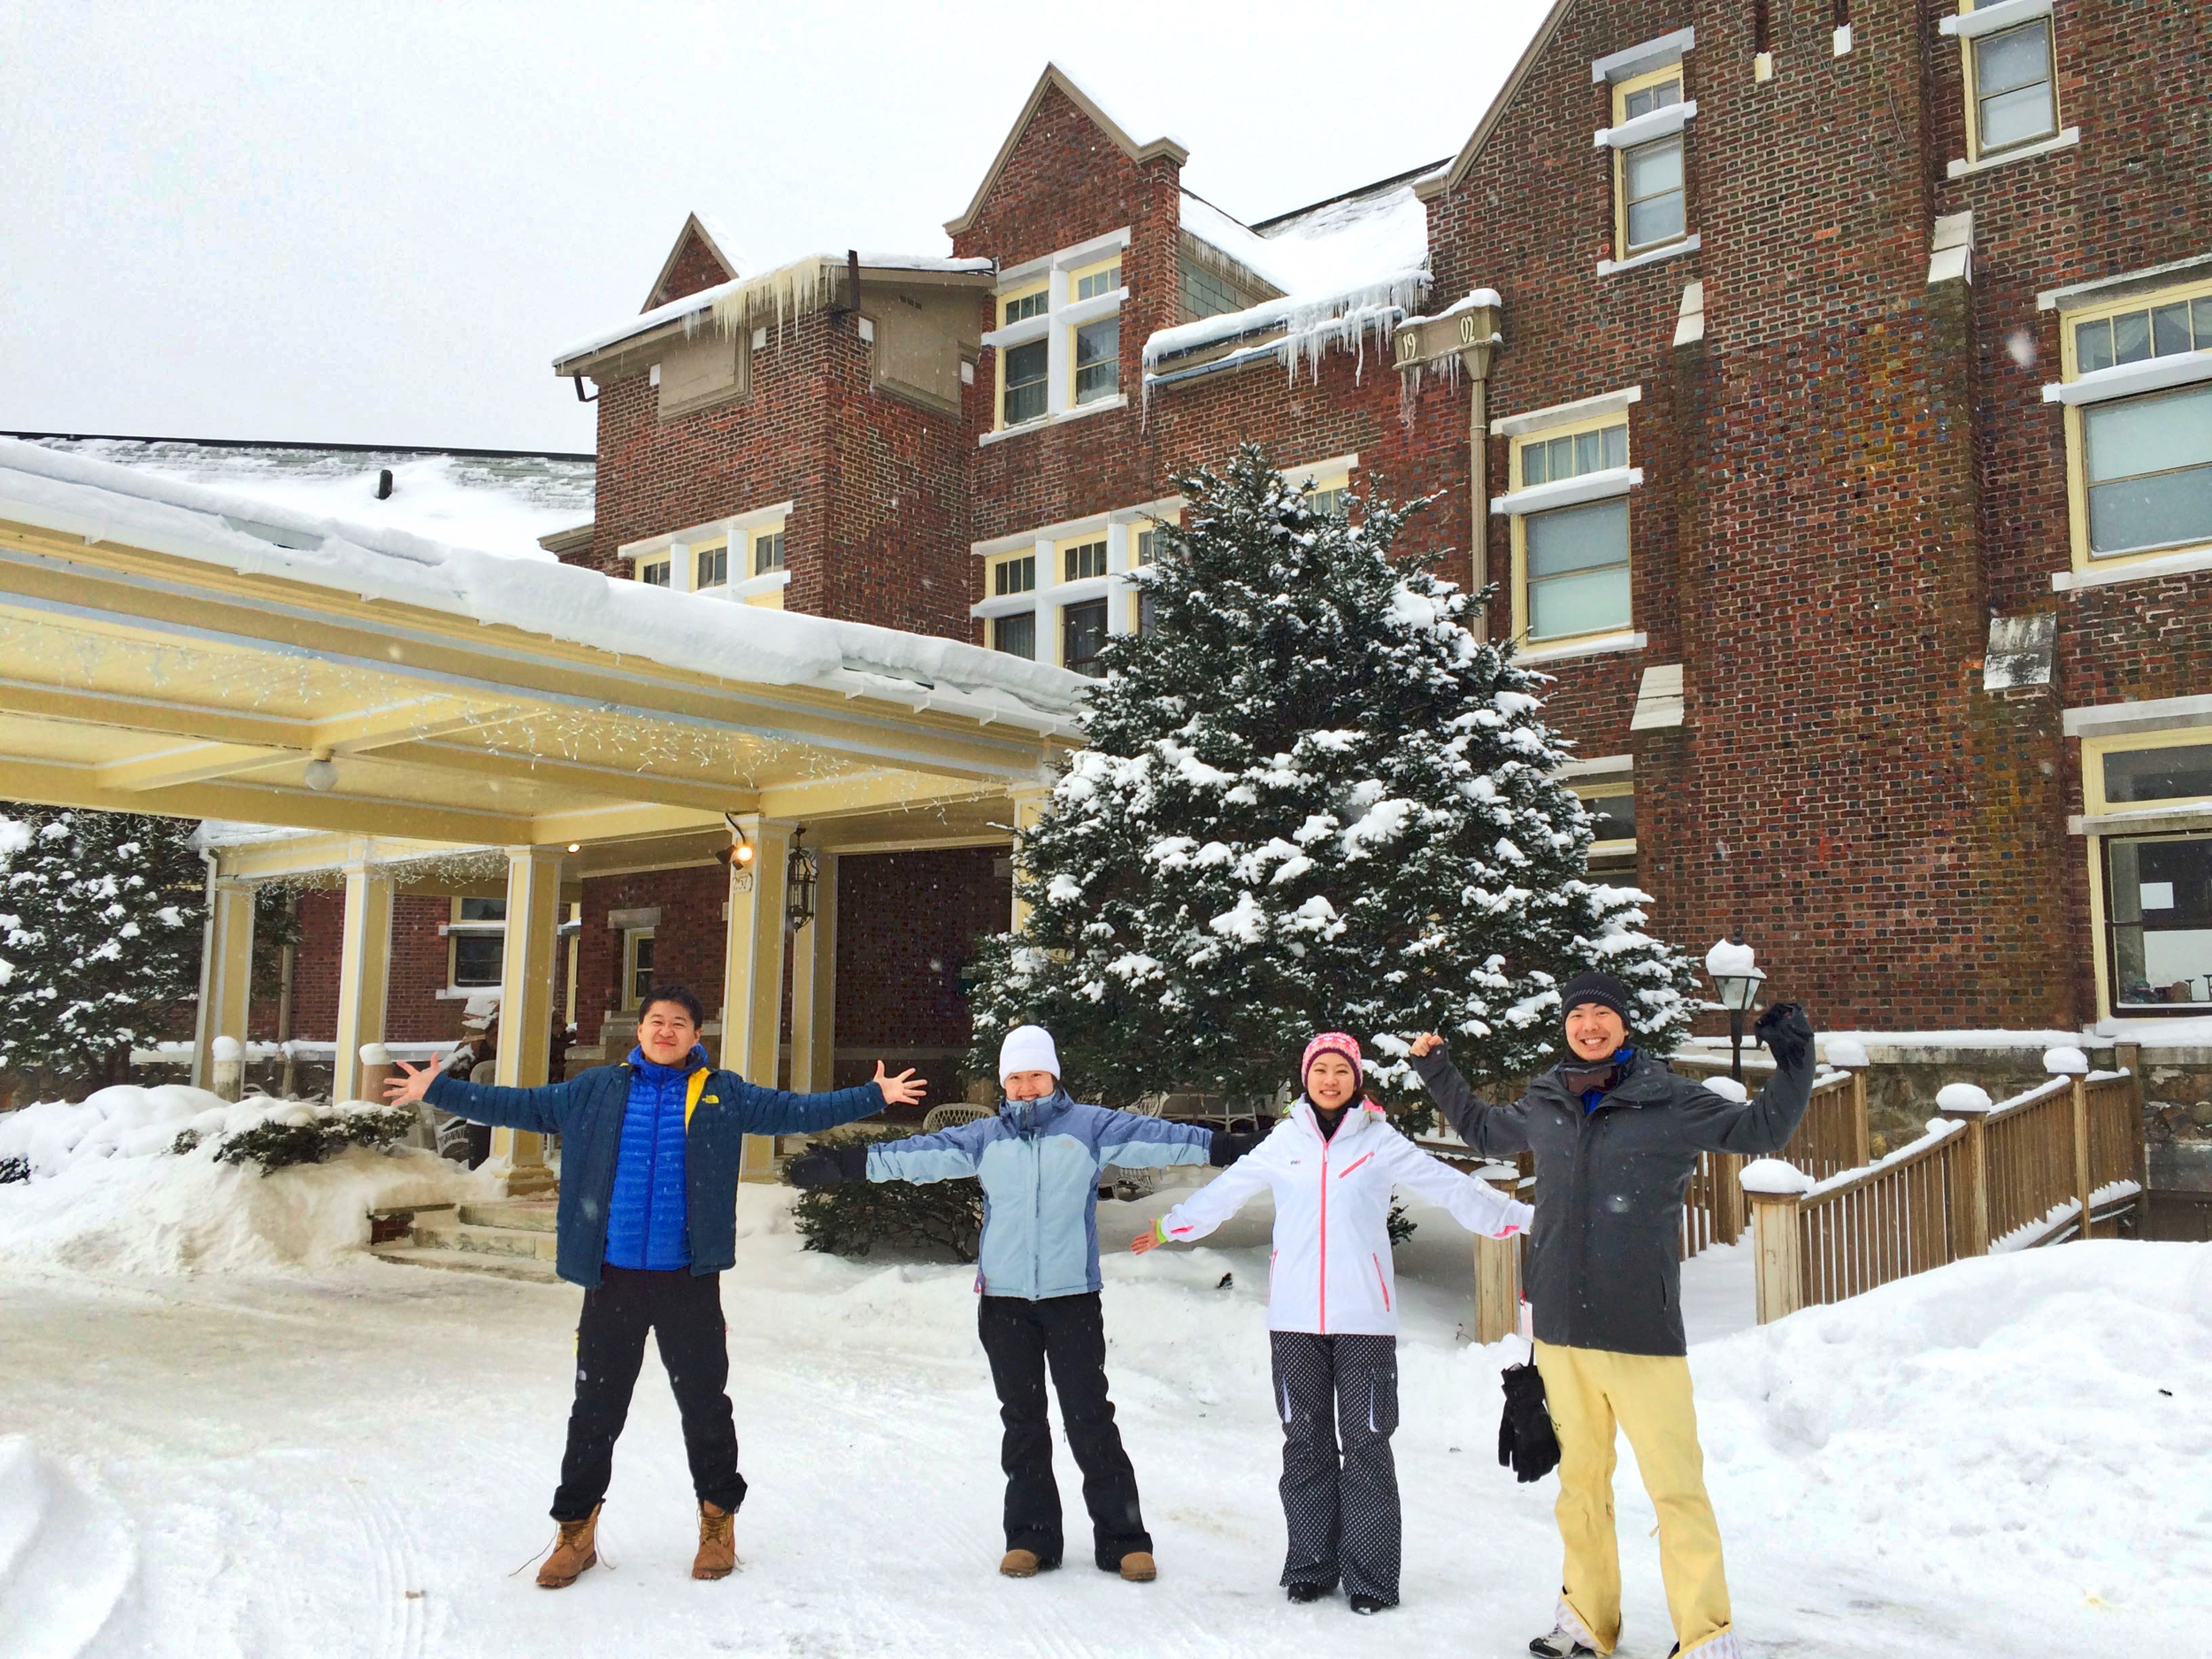 Guests ready to hit the slopes i.jpeg